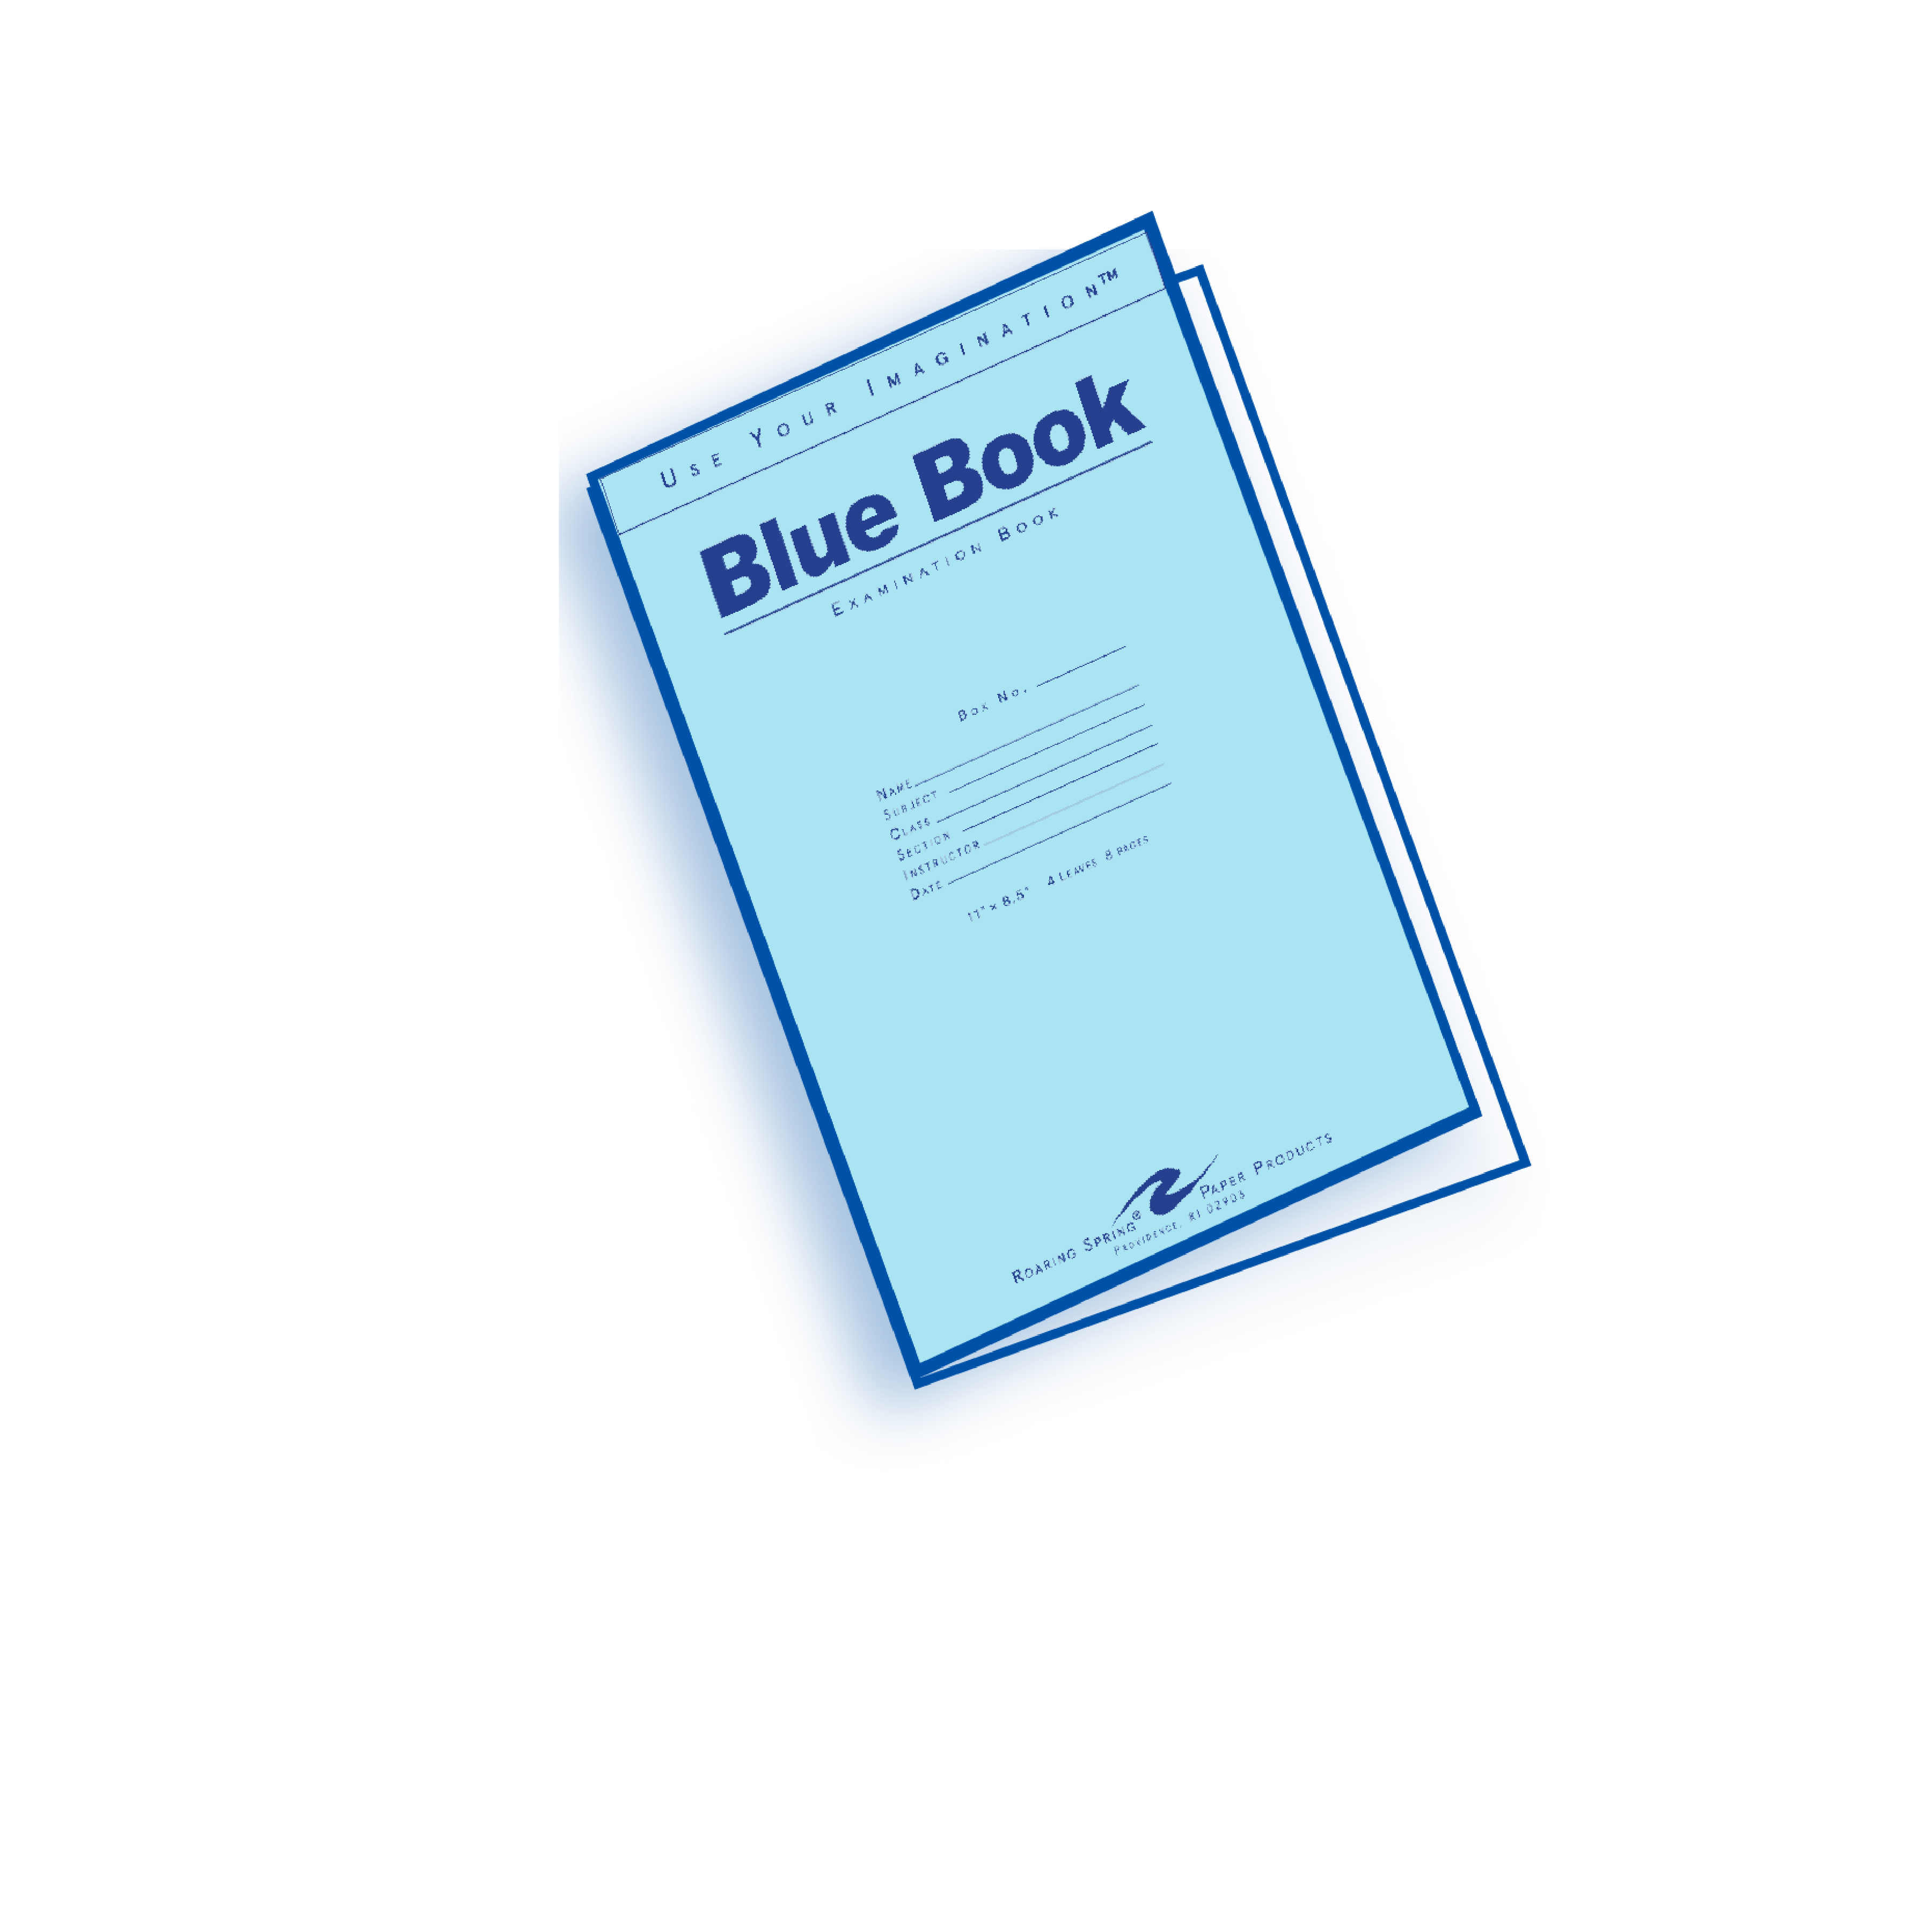 Blue book png. File wikimedia commons fileblue